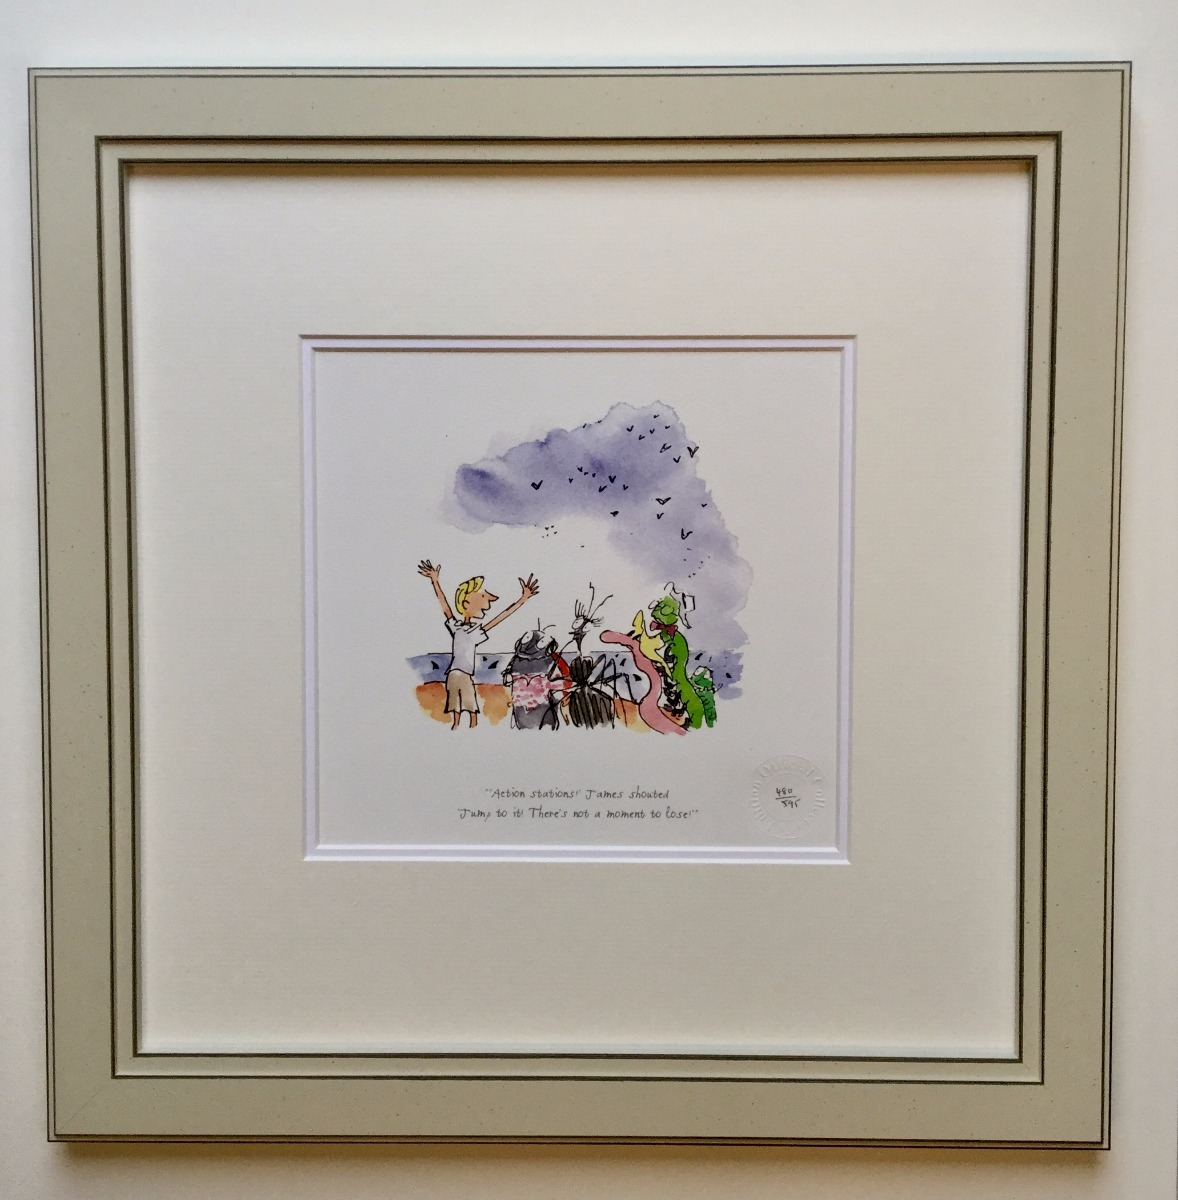 Action Stations! - James Shouted by Quentin Blake